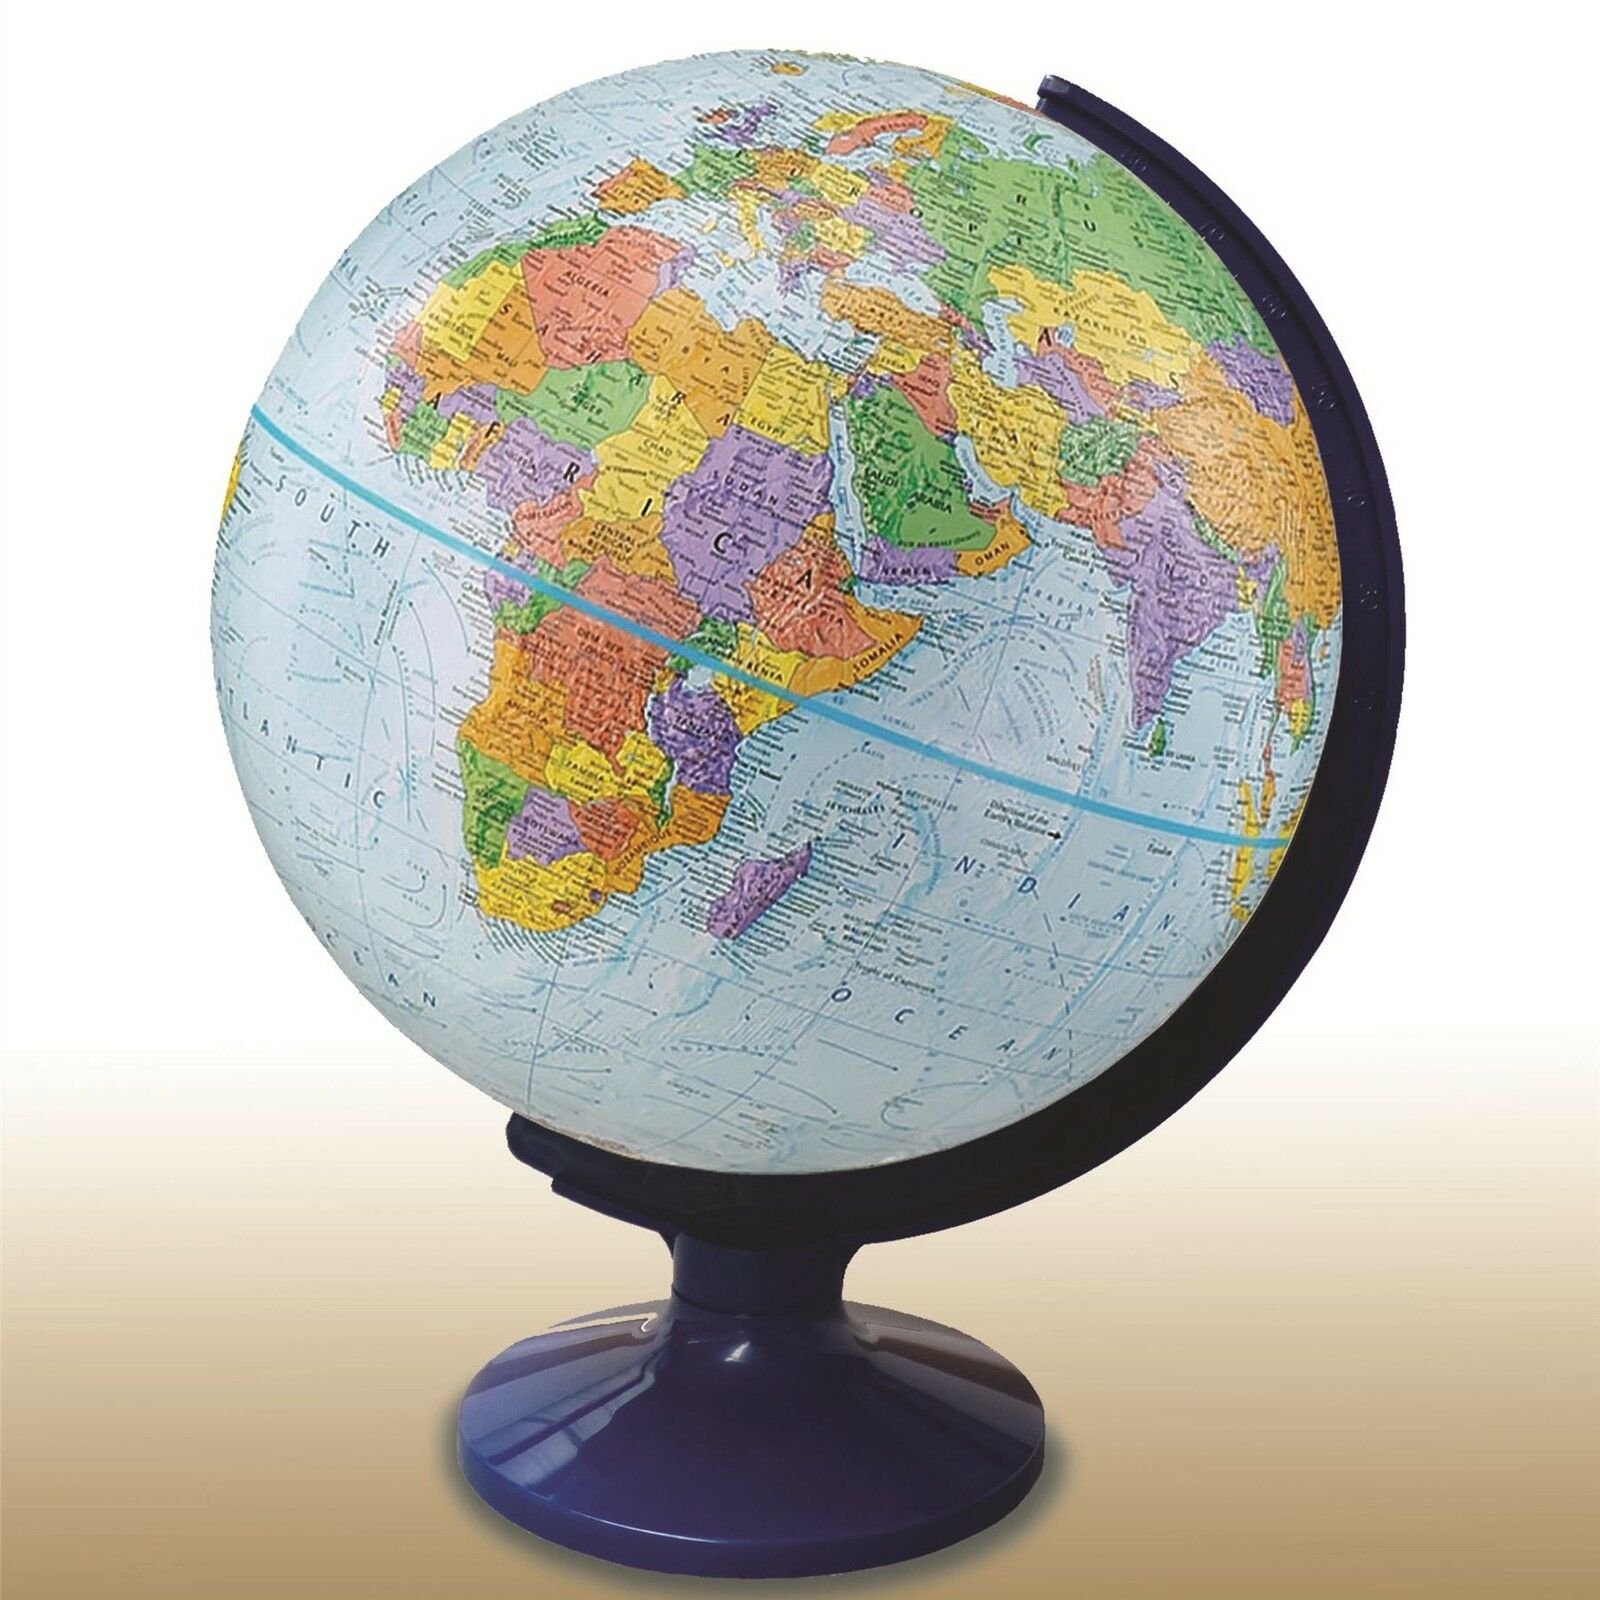 Early Learners Globe (Political) For Schools